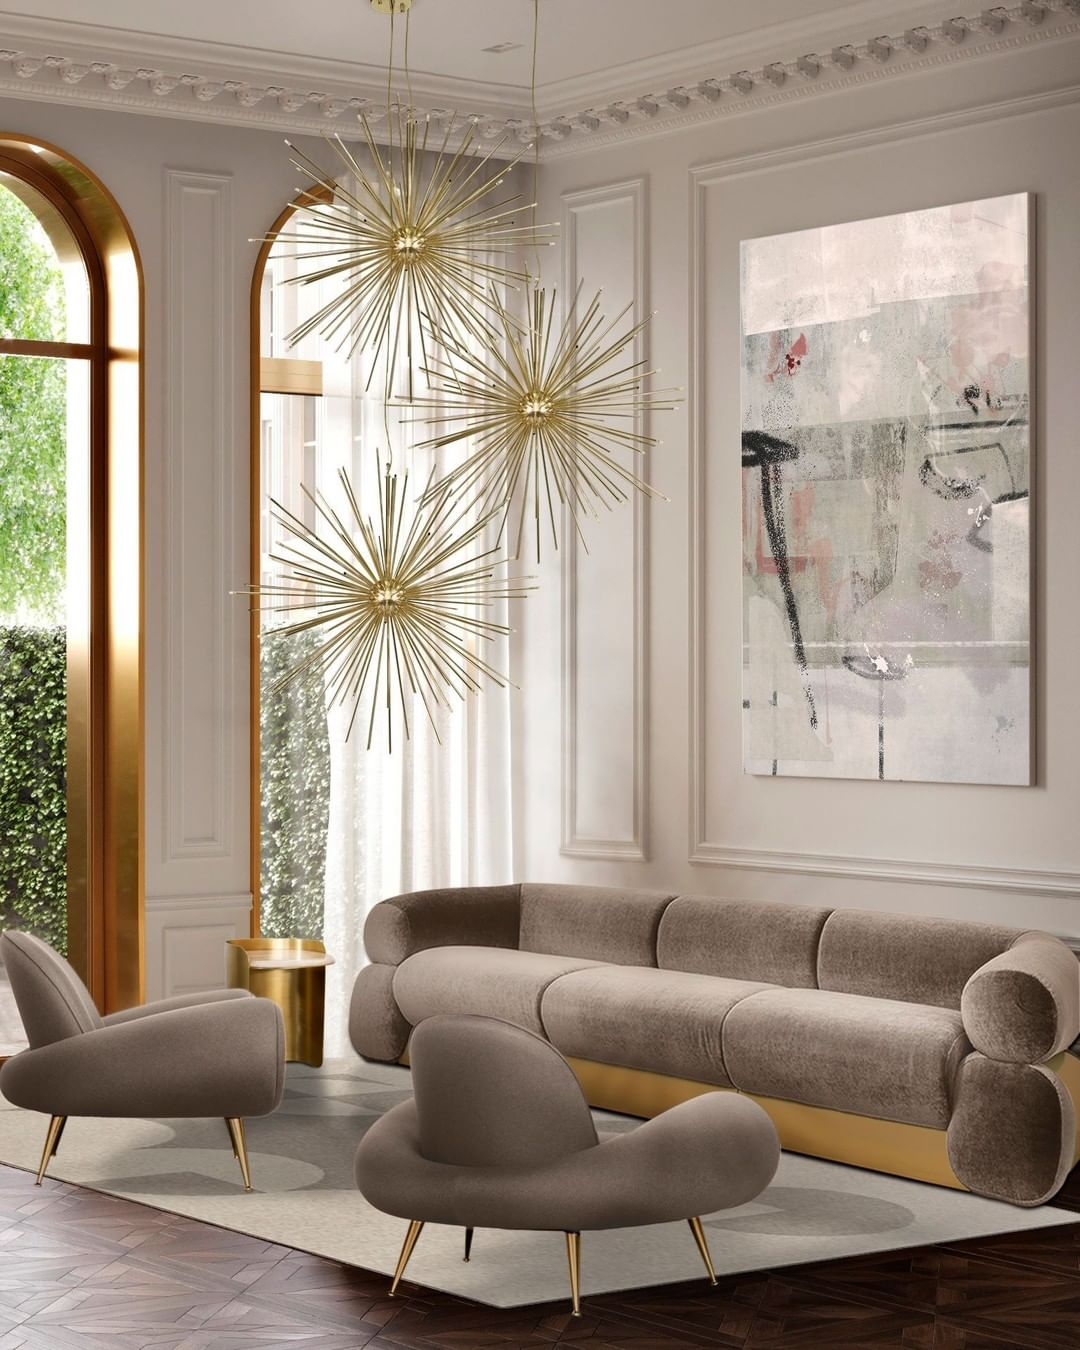 Living Room Ideas To Live For!